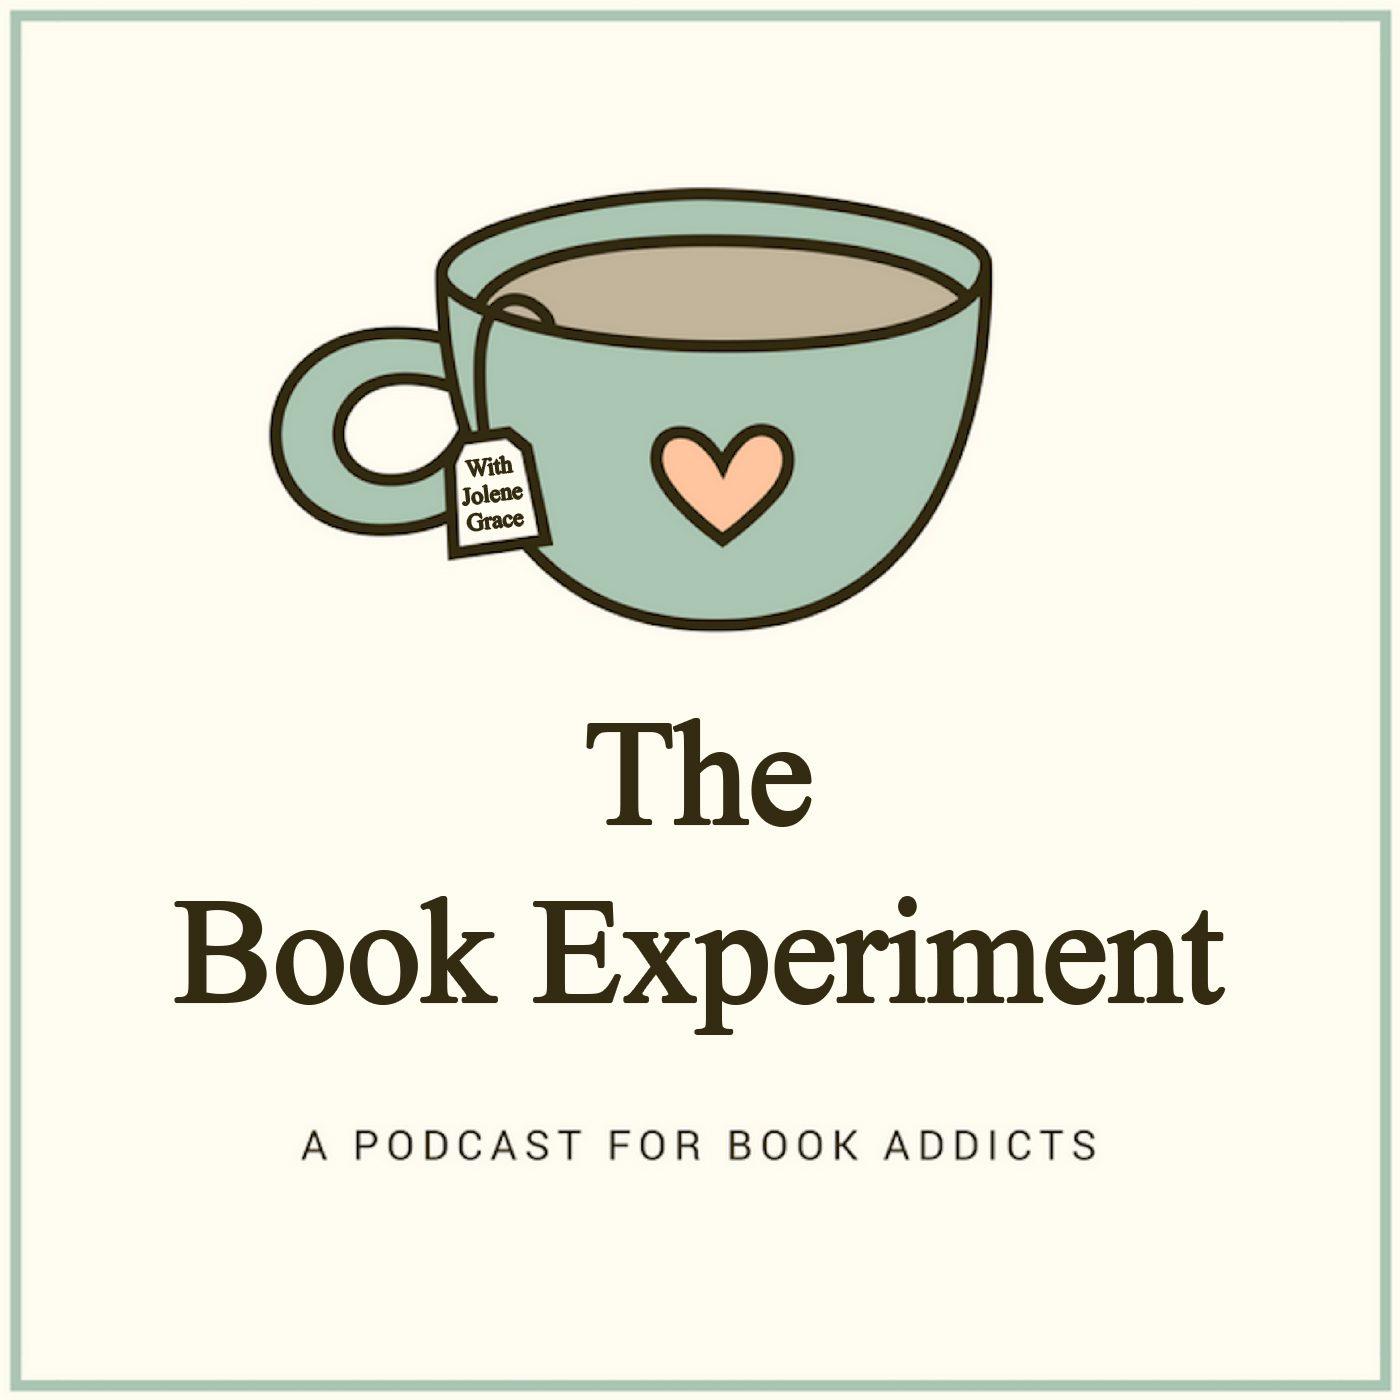 The Book Experiment